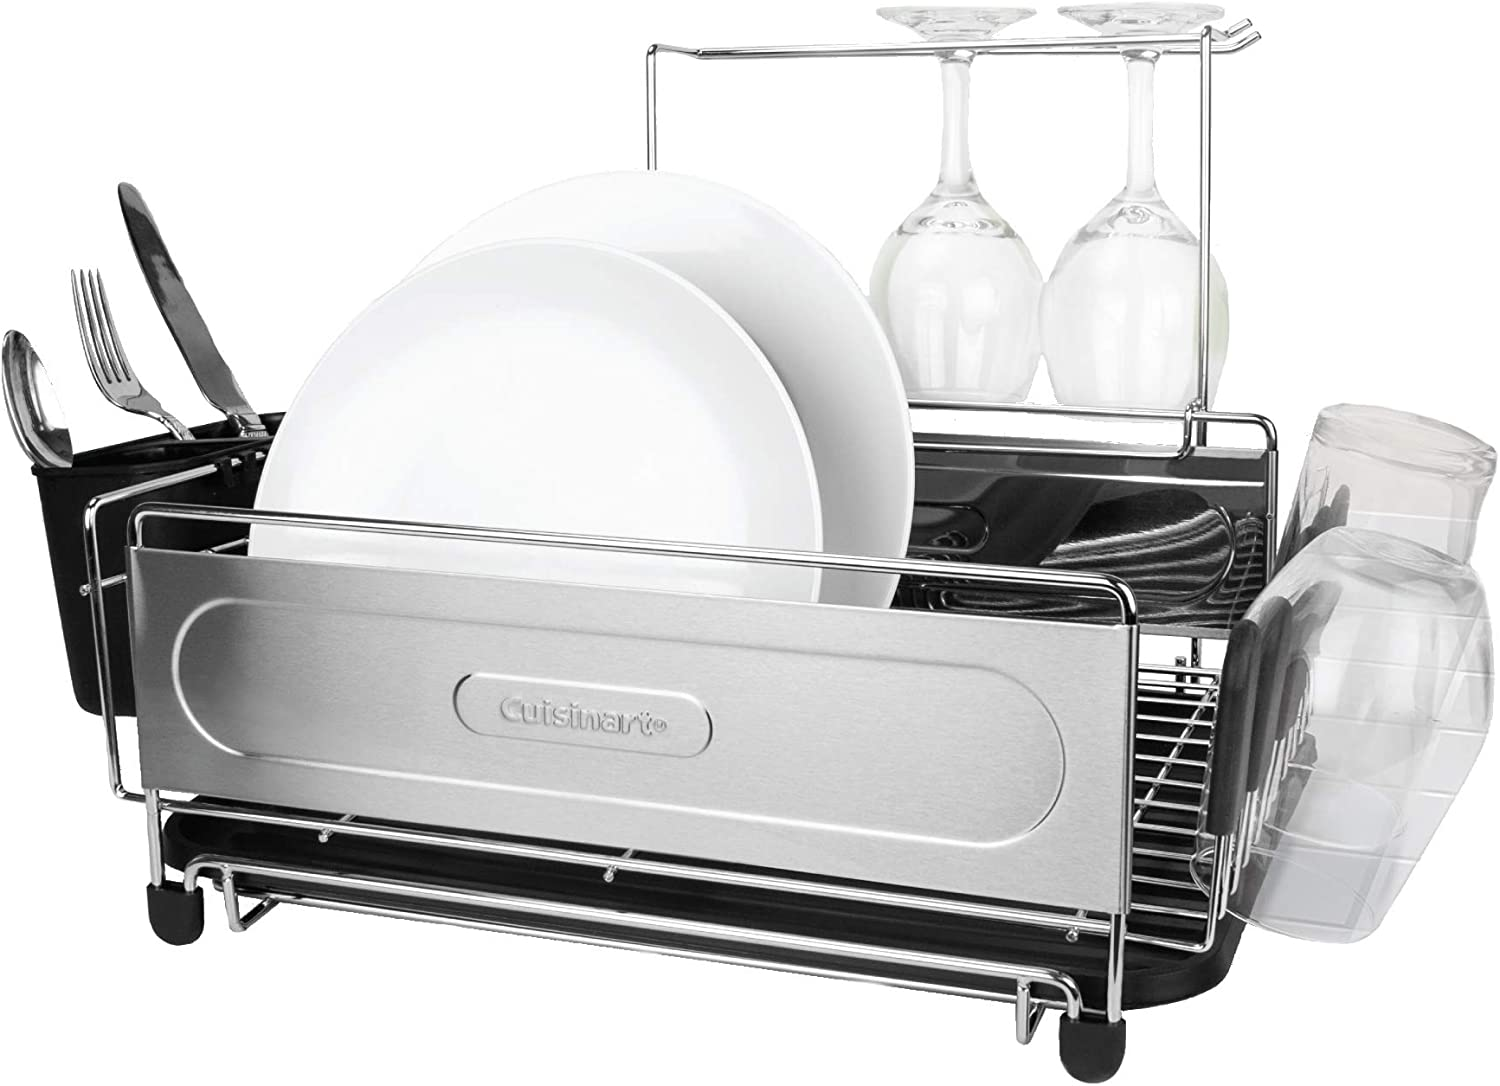 Cuisinart Stainless Steel Dish Drying Limited price sale Outstanding – Wire Rack Includes